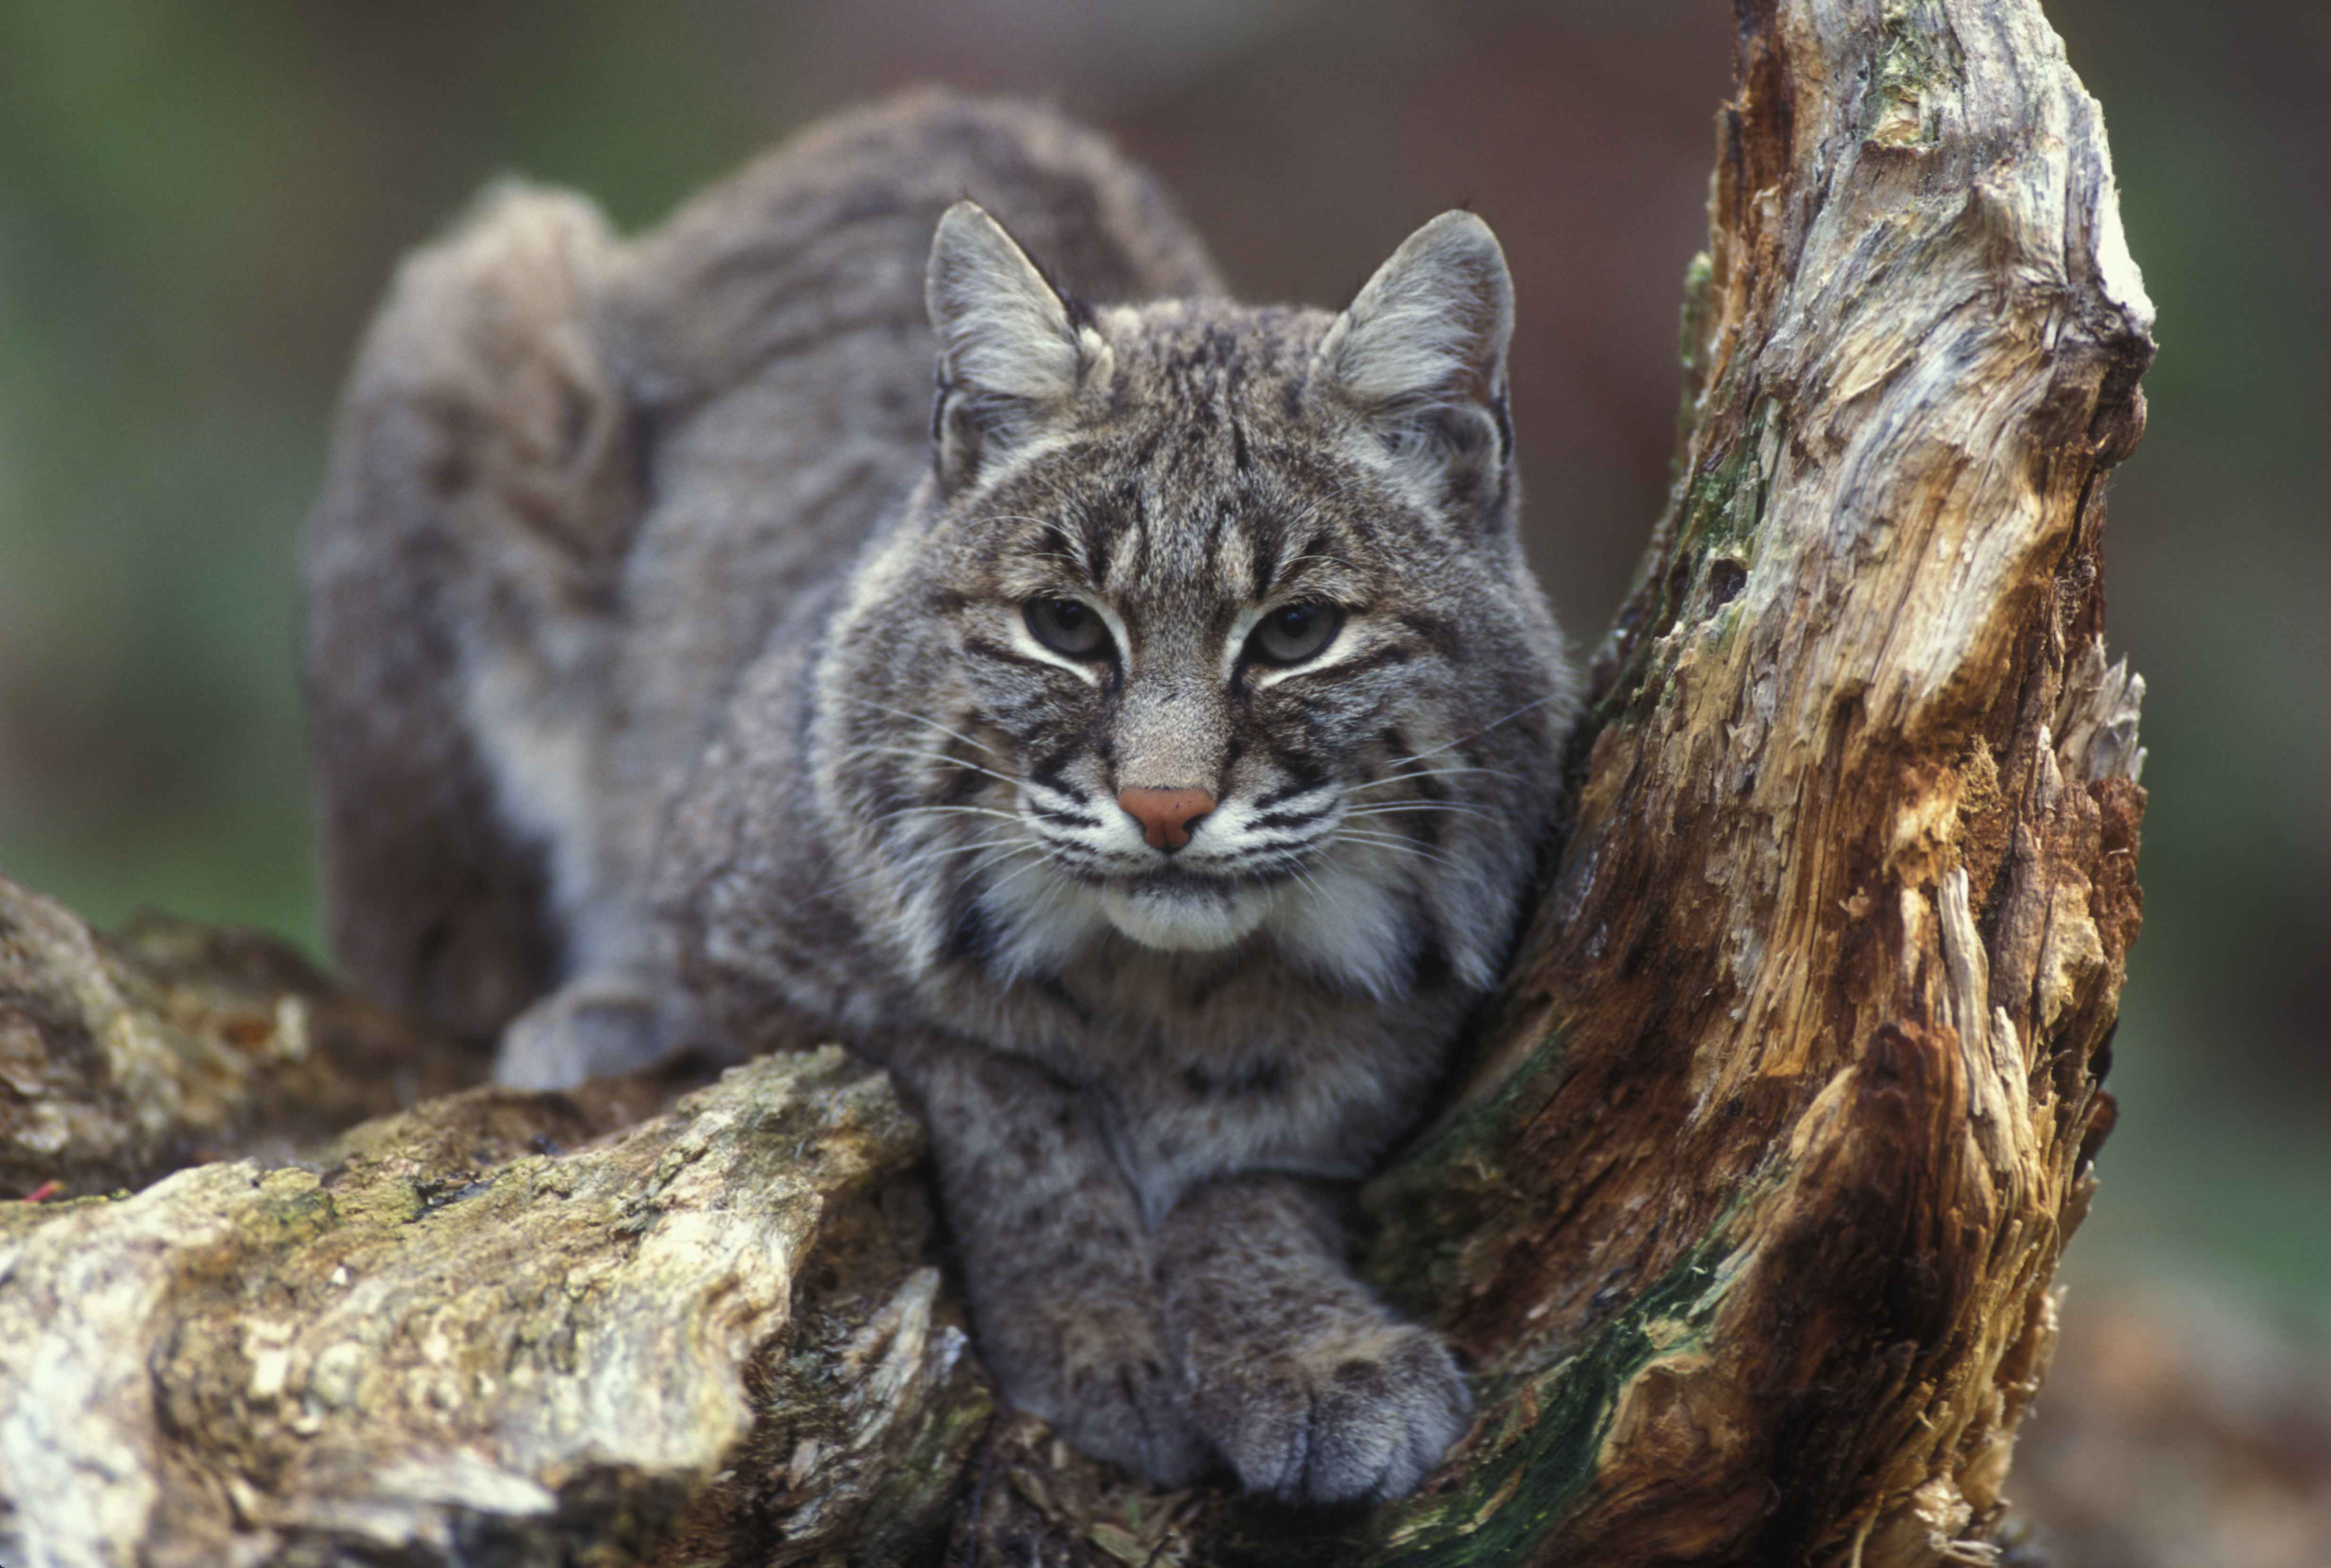 Quinn Vetoes Bill to Allow Bobcat Hunting in IL | Newsradio WJPF